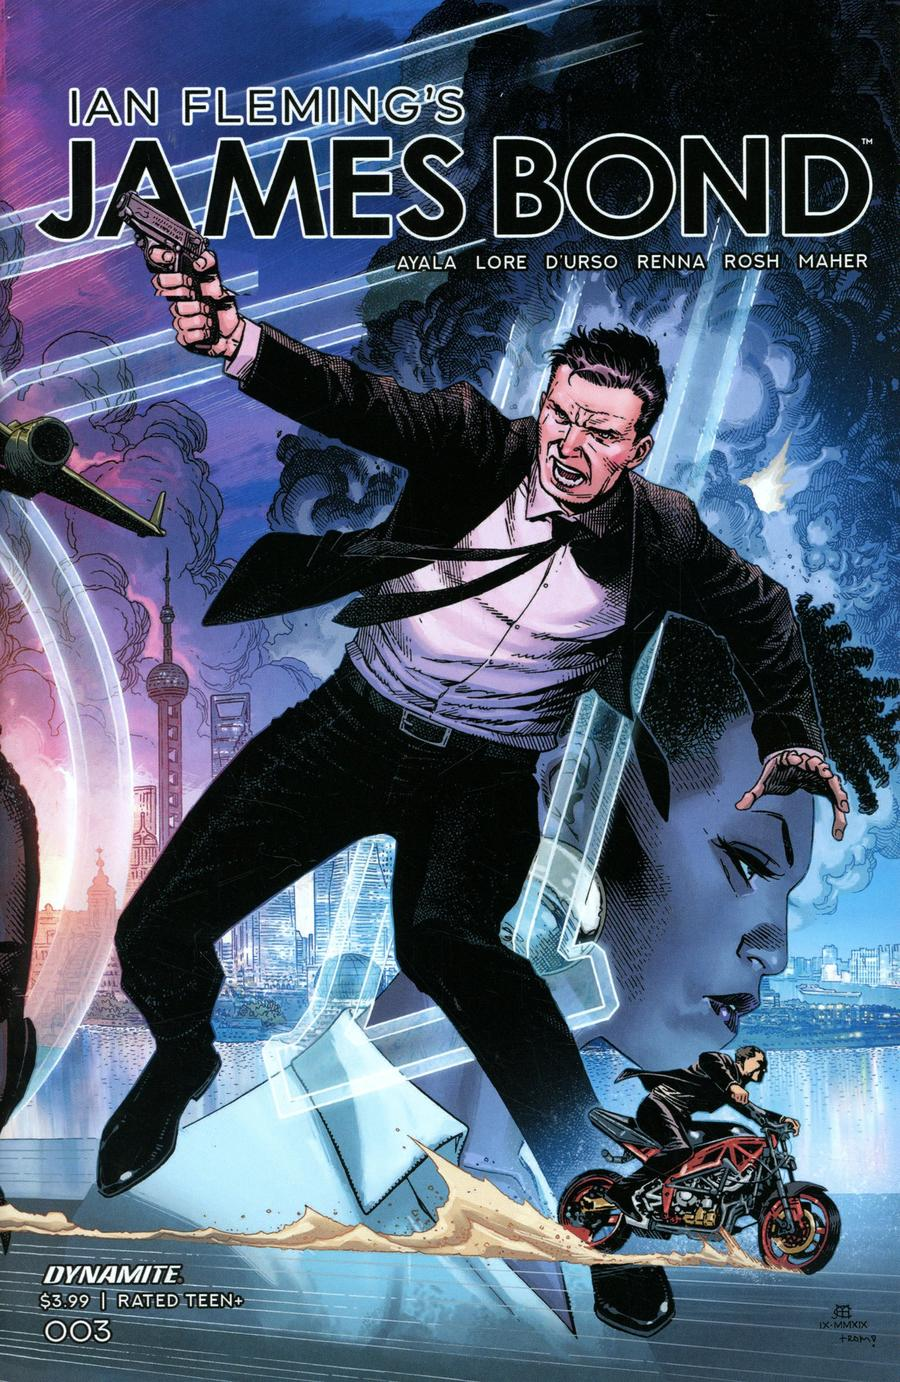 James Bond Vol 3 #3 Cover A Regular Jim Cheung Fold Out Cover